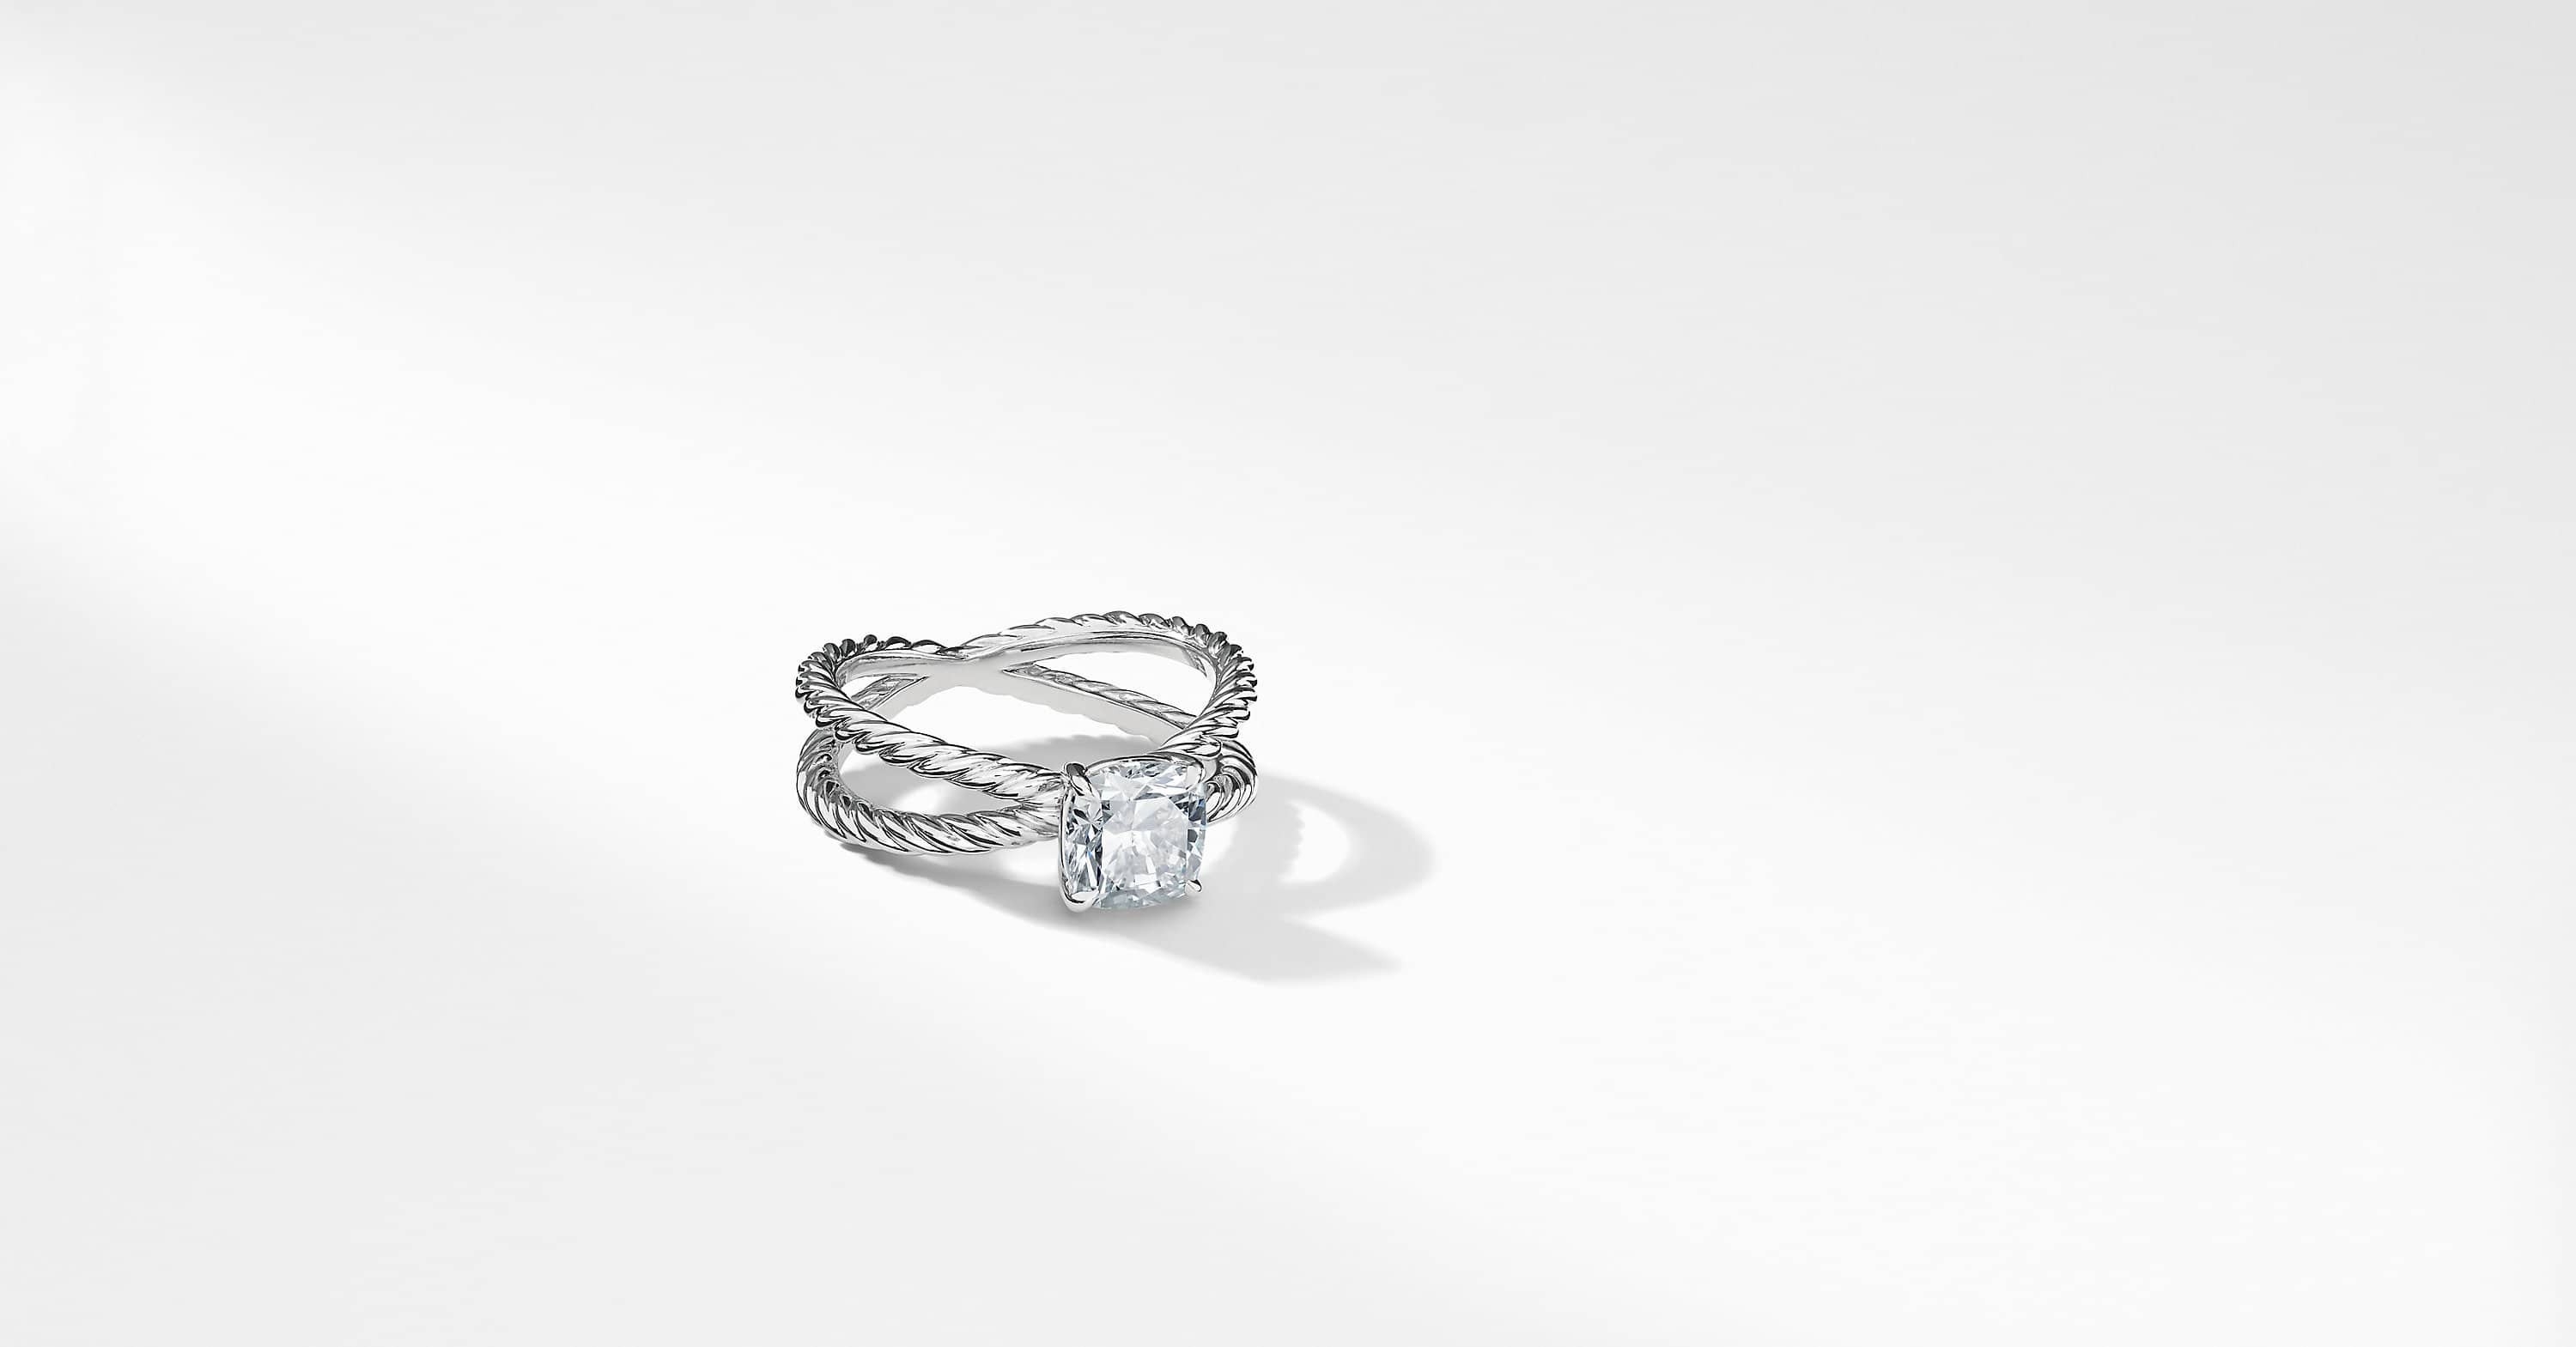 DY Crossover Petite Engagement ring in Platinum, DY Signature Cut